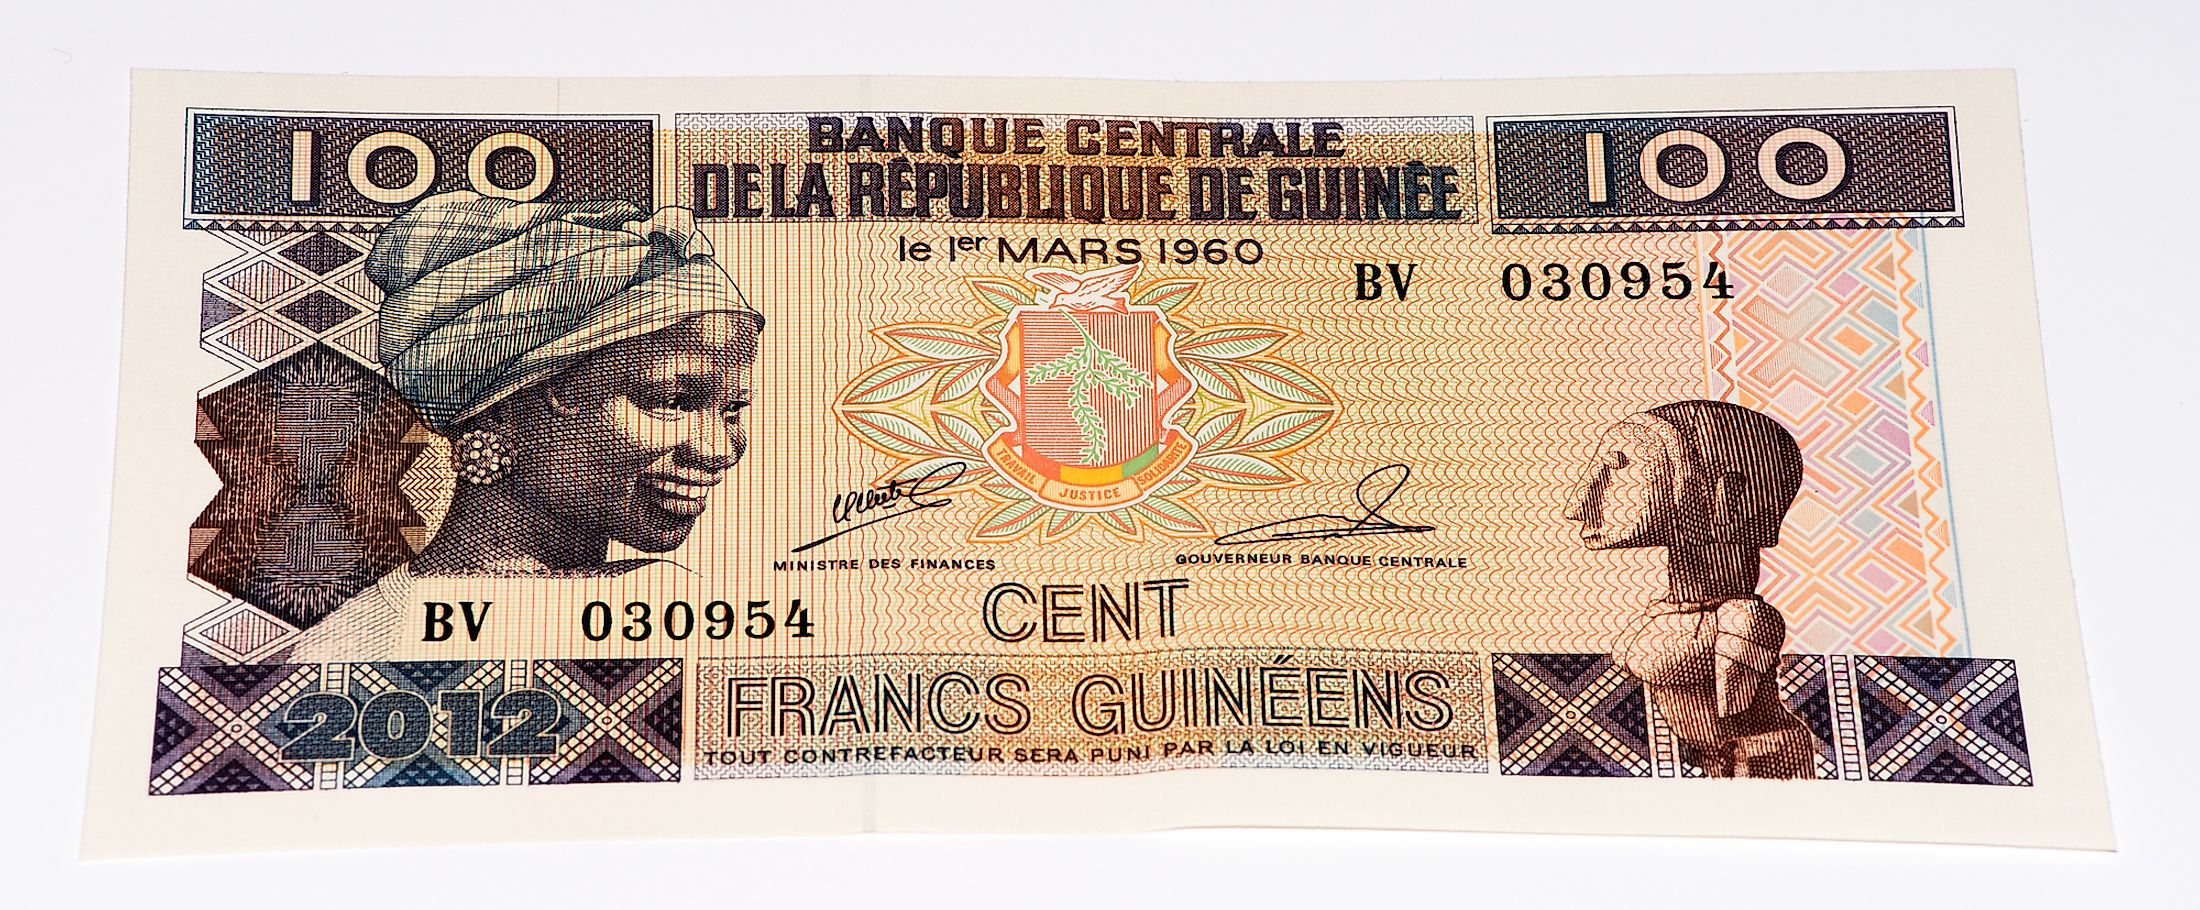 West African CFA francs are used in a number of West African countries.